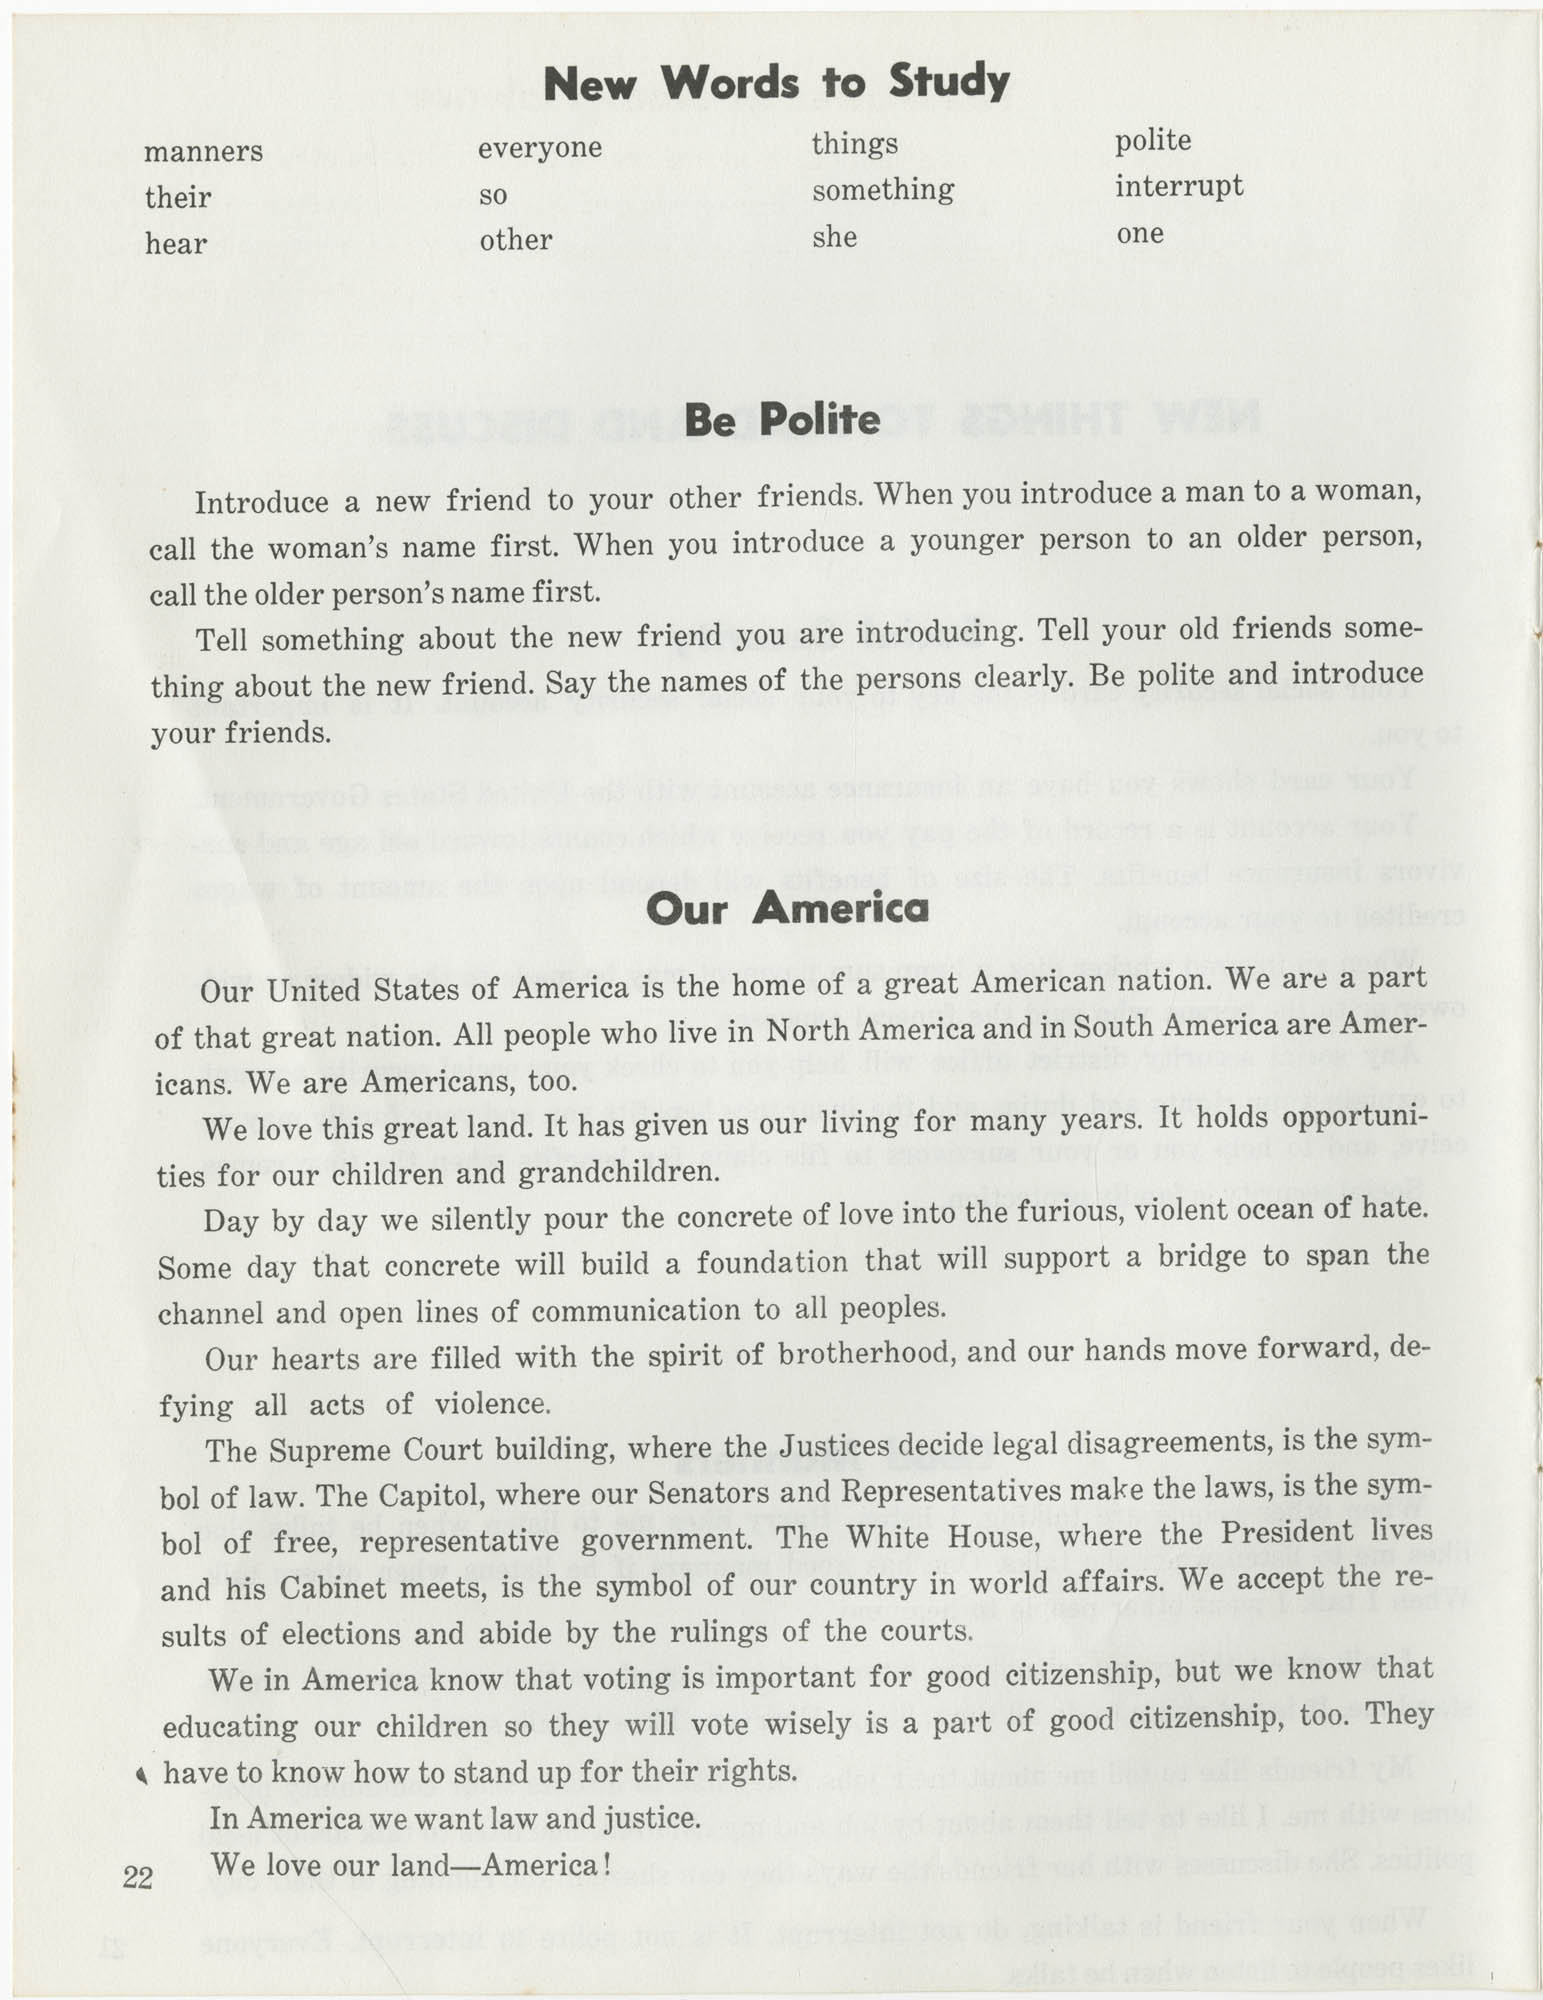 Southern Christian Leadership Conference Citizenship School Workbook, Page 22